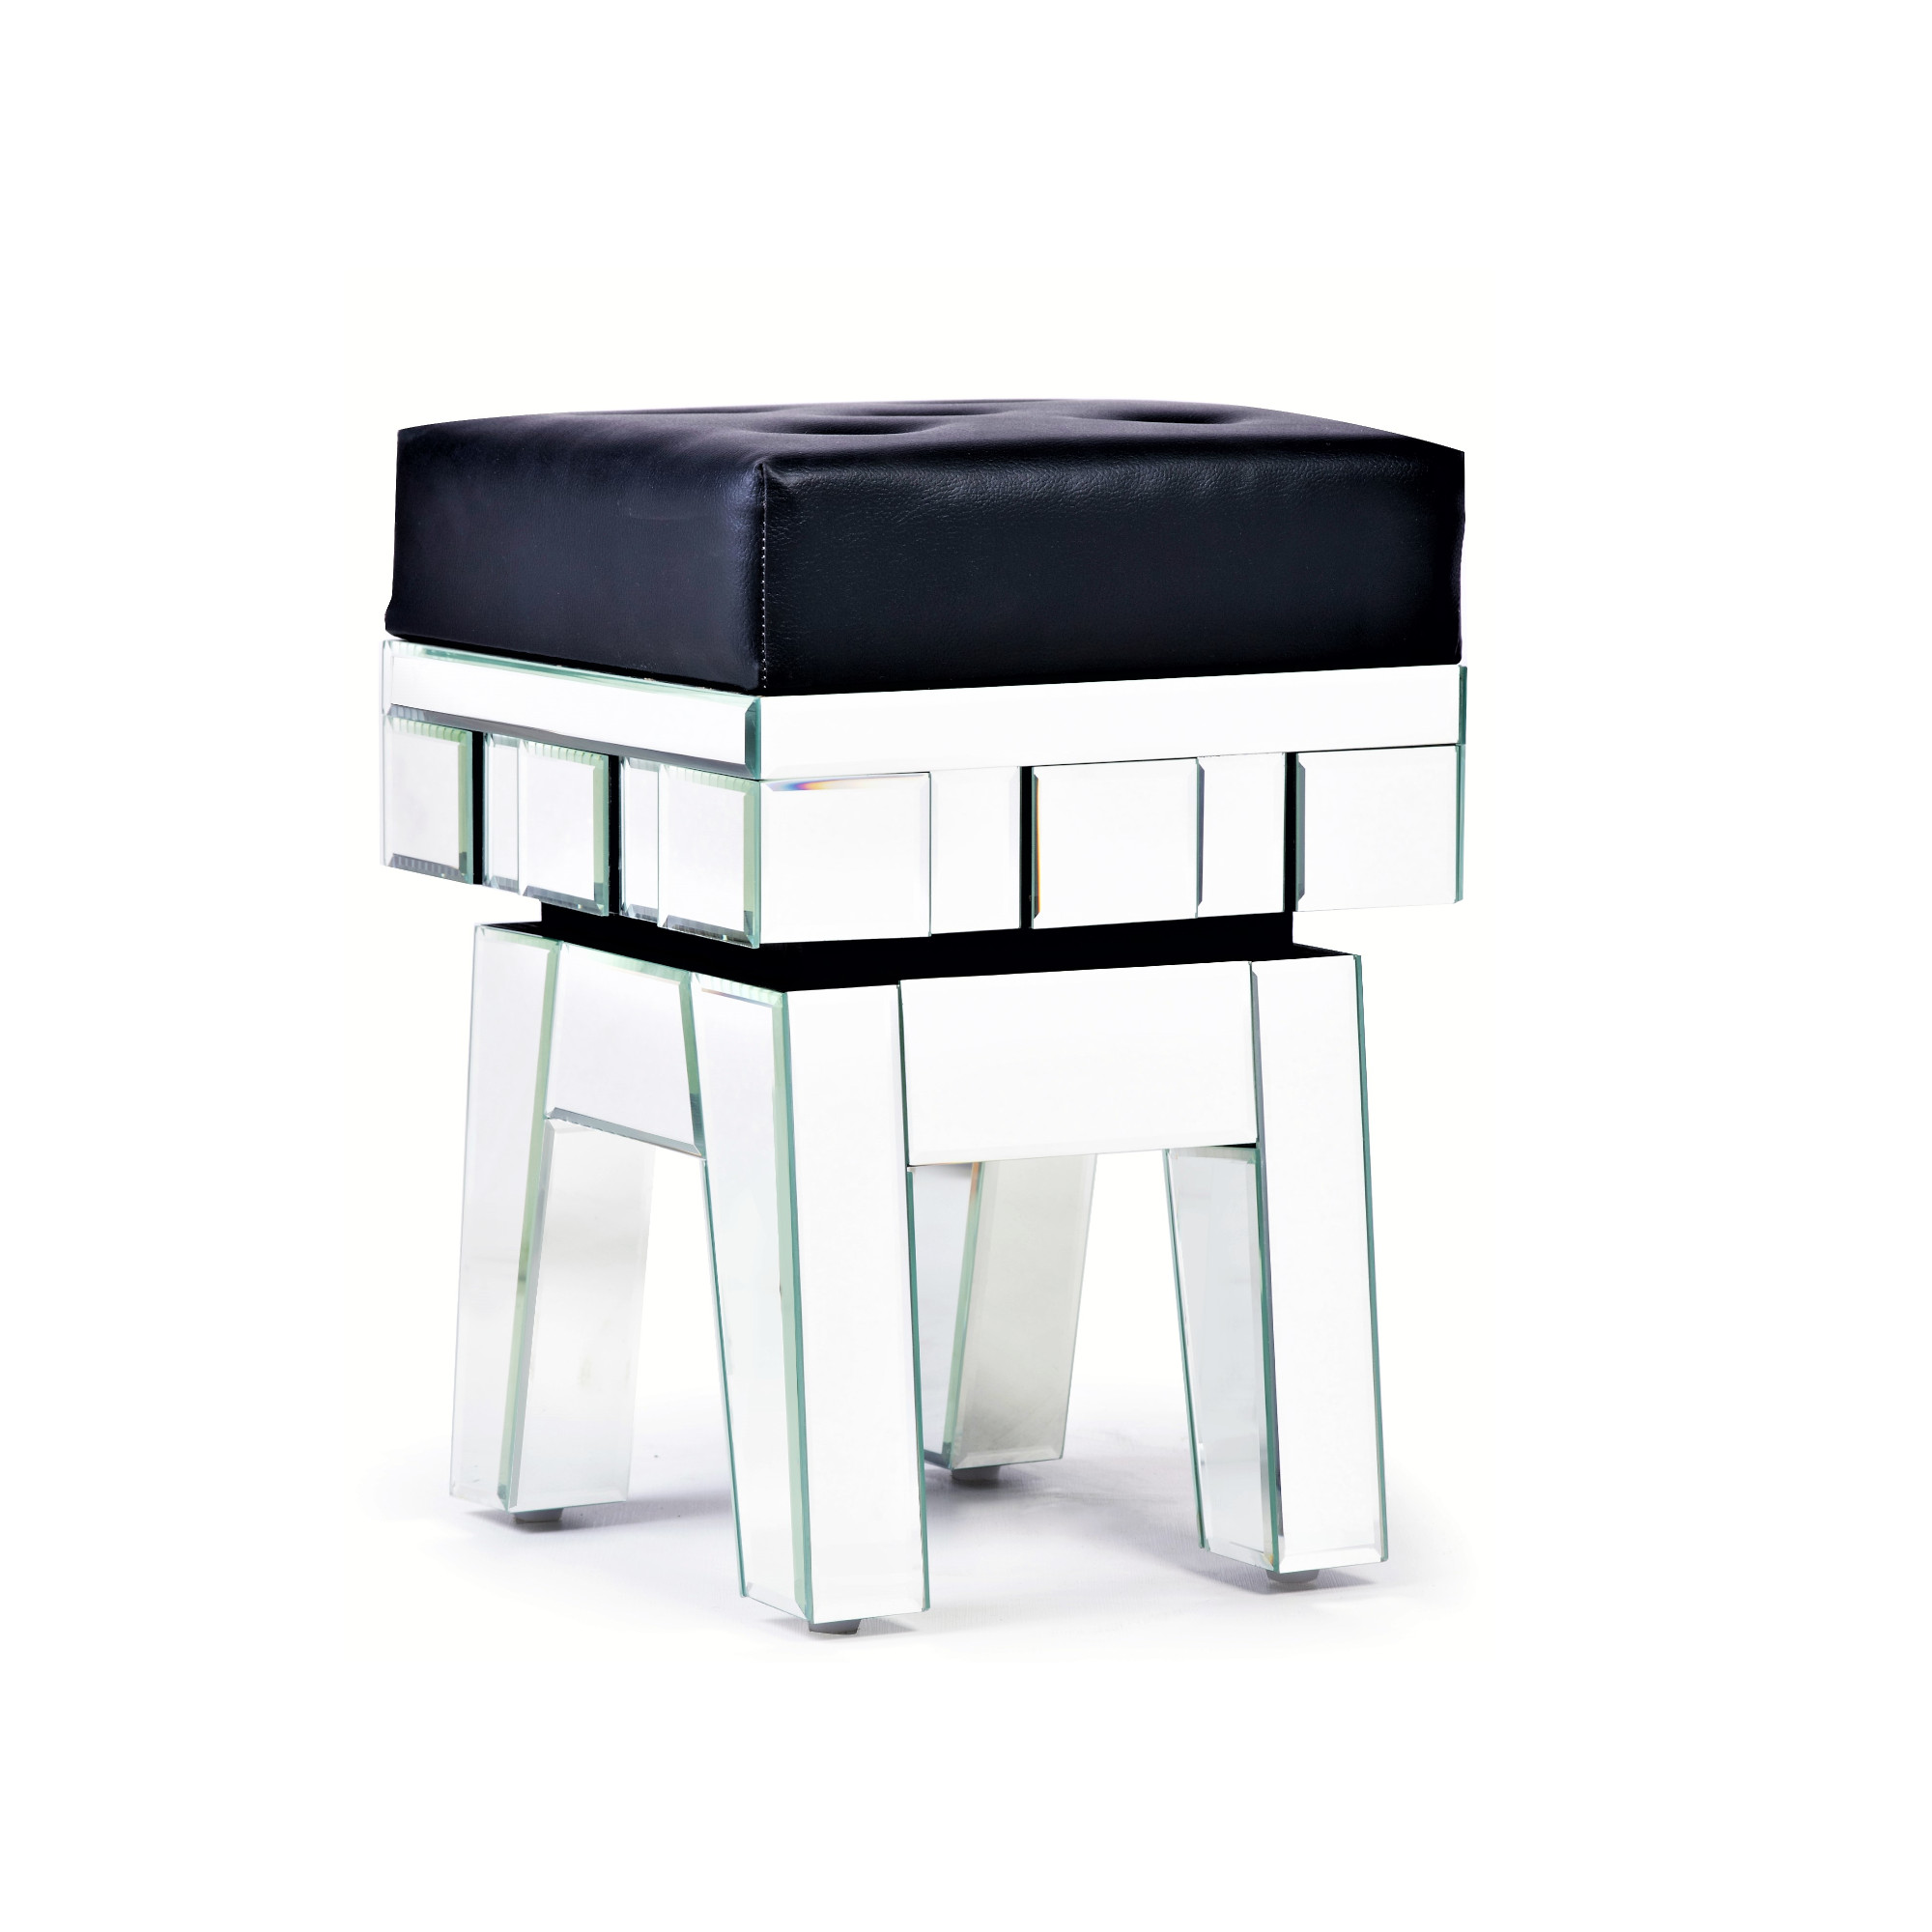 STERLING Mirrored Ottoman Stool